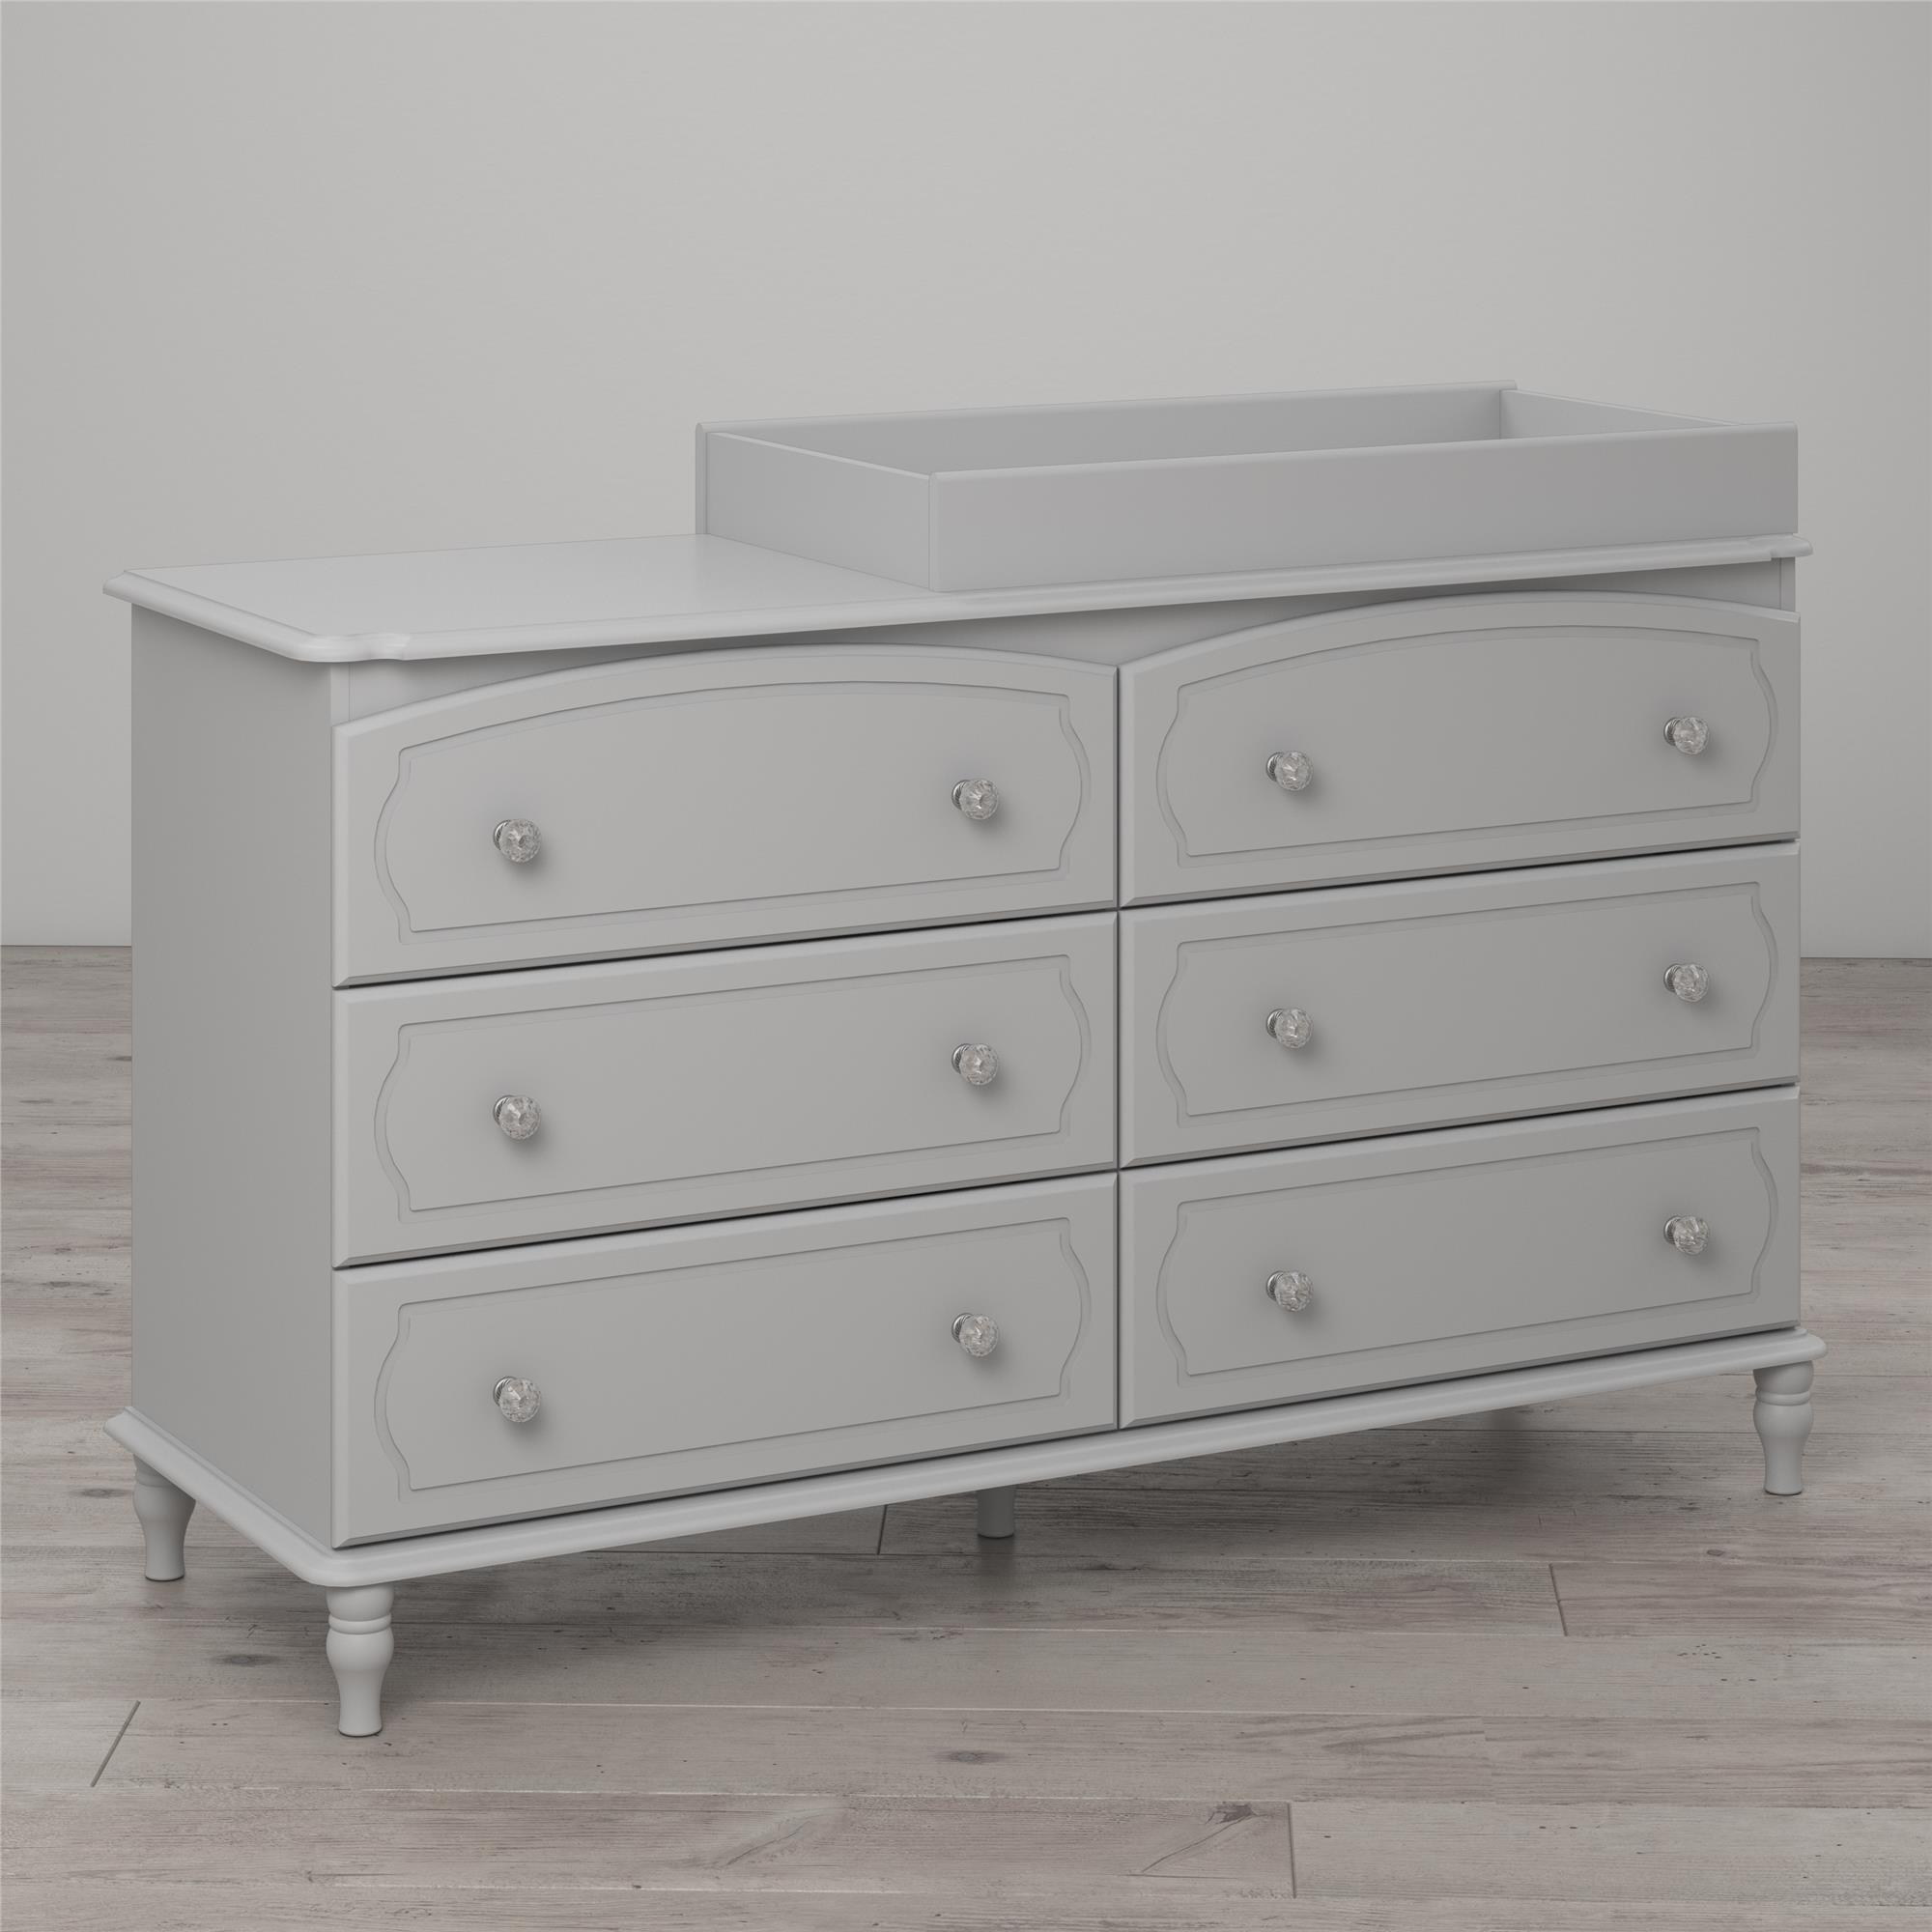 Little Seeds Rowan Valley Laren 6-Drawer Changing Table, Gray by Little Seeds